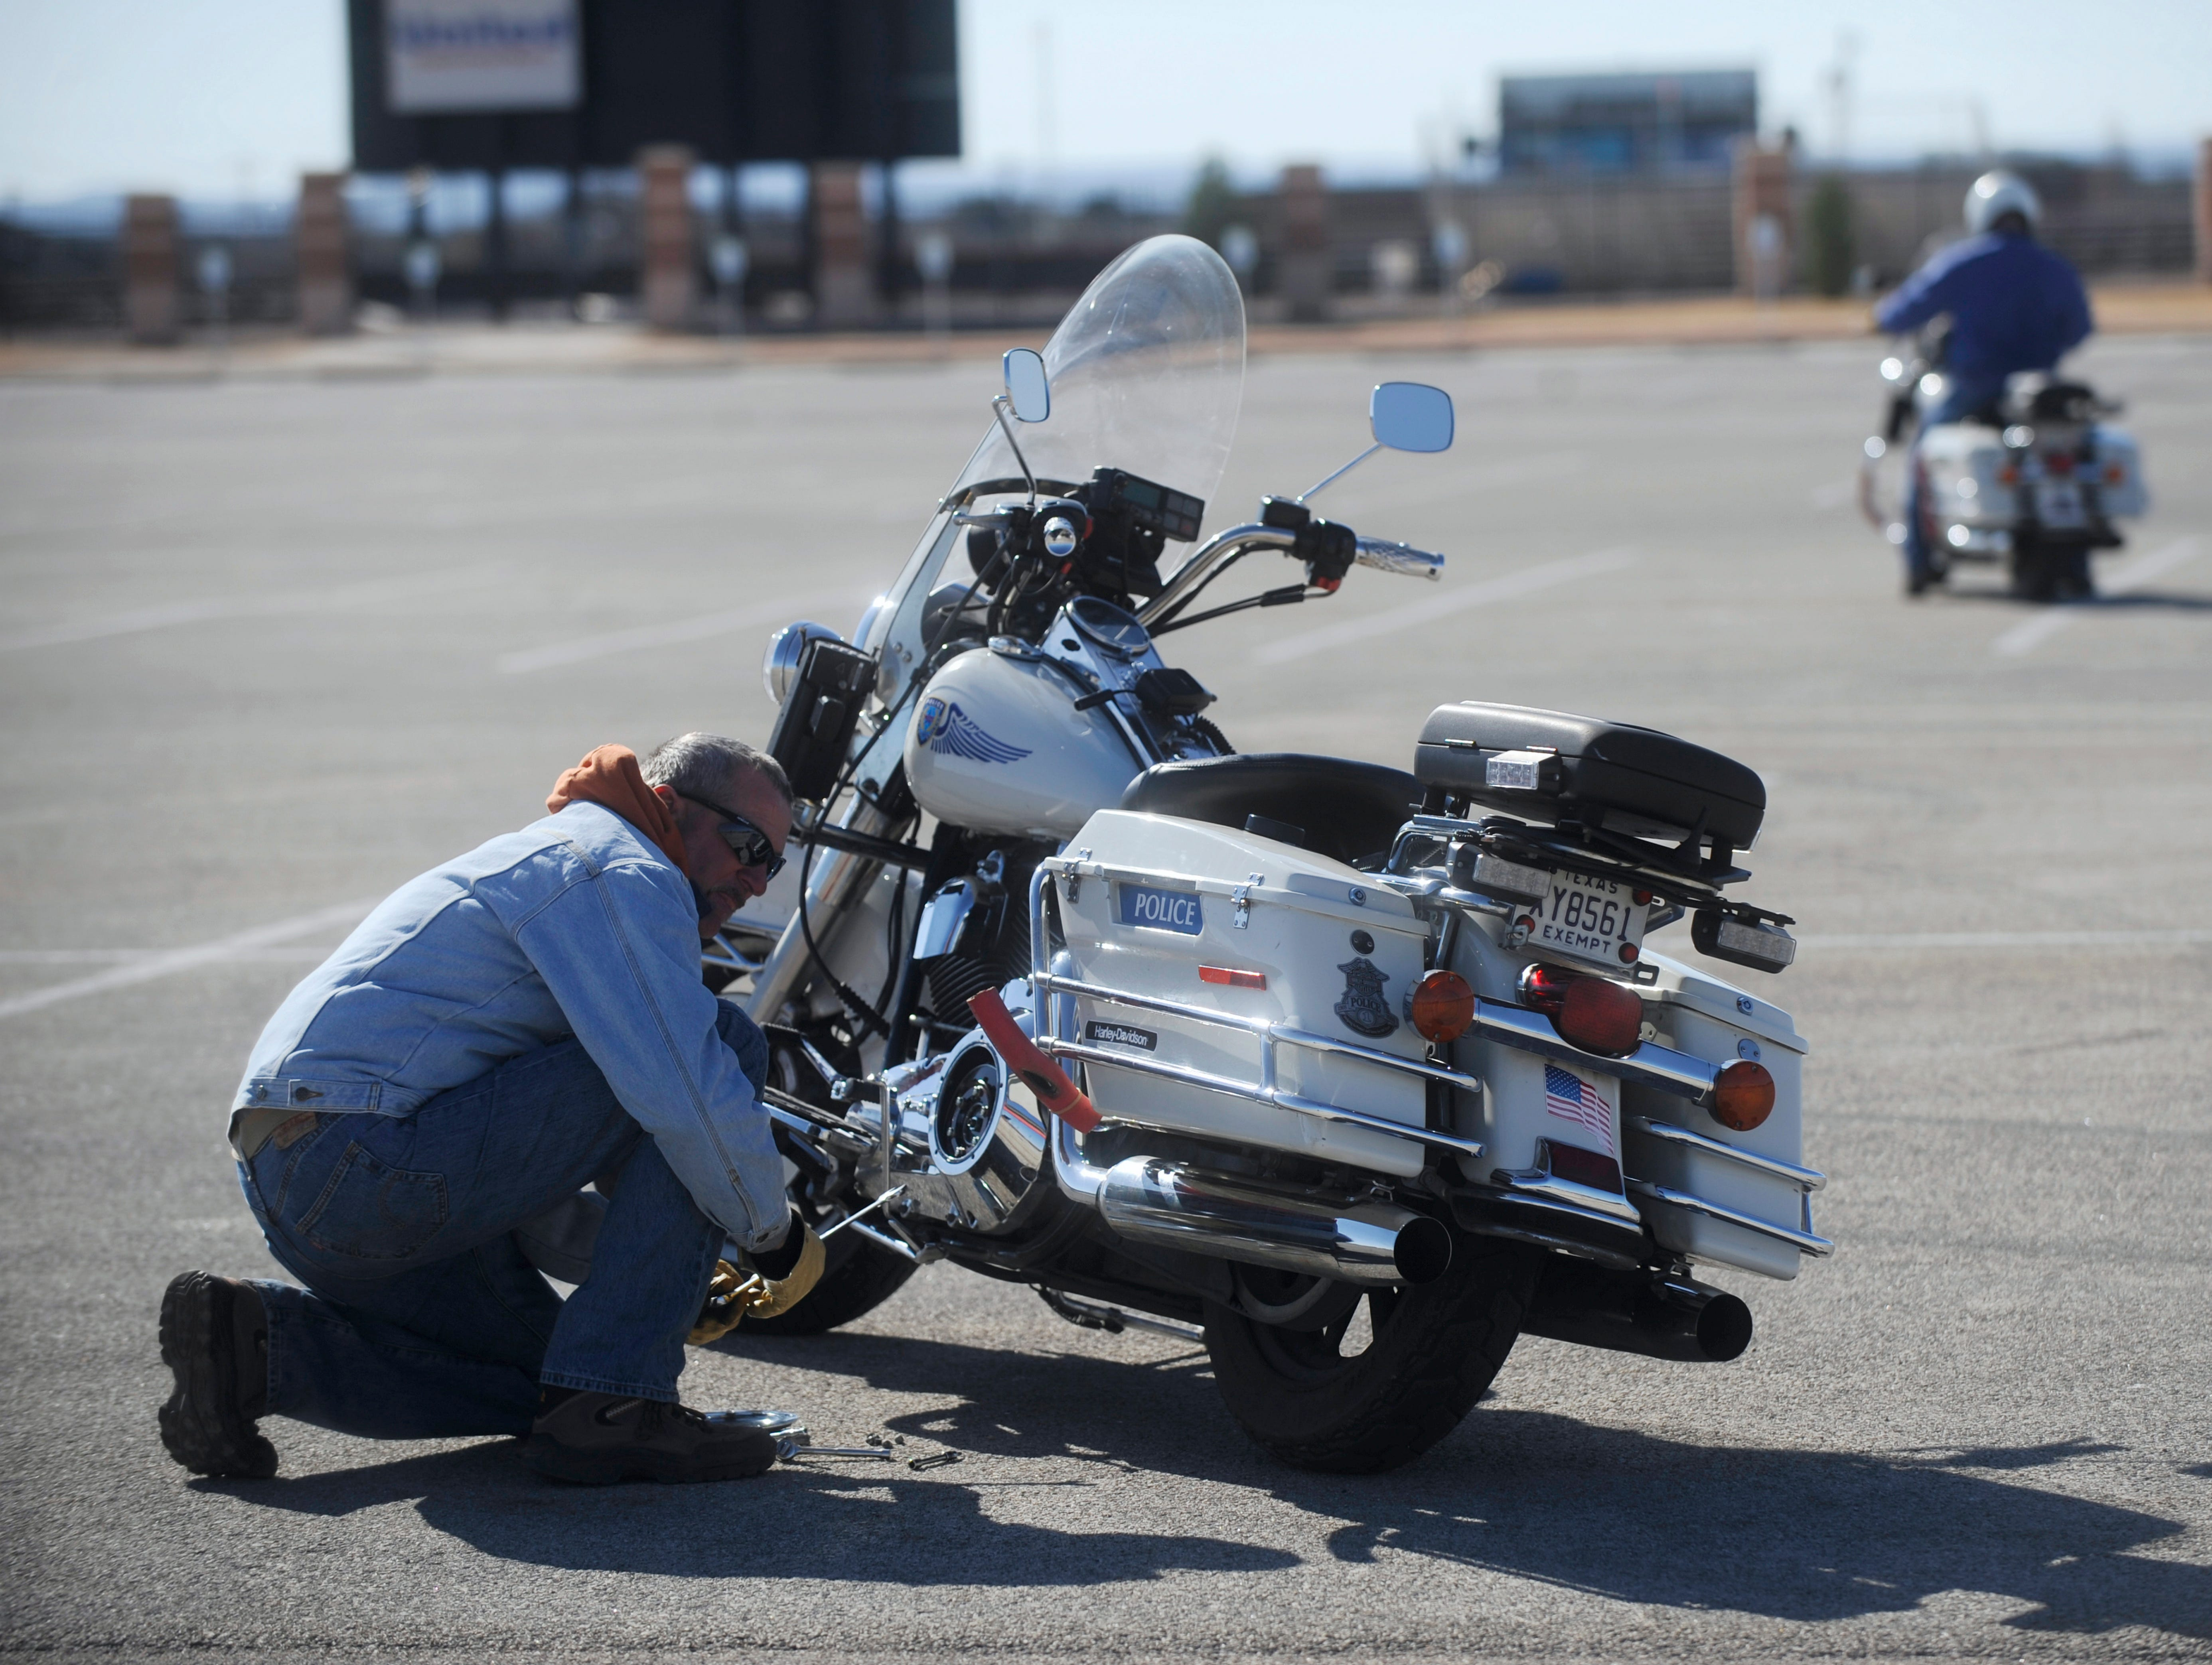 Rodney Holder, left, places rubber covering on the metal parts of the motorcycle closest to the ground during a tight turn before police motorcycle re-training at the Shotwell Stadium parking lot Feb. 11, 2009.